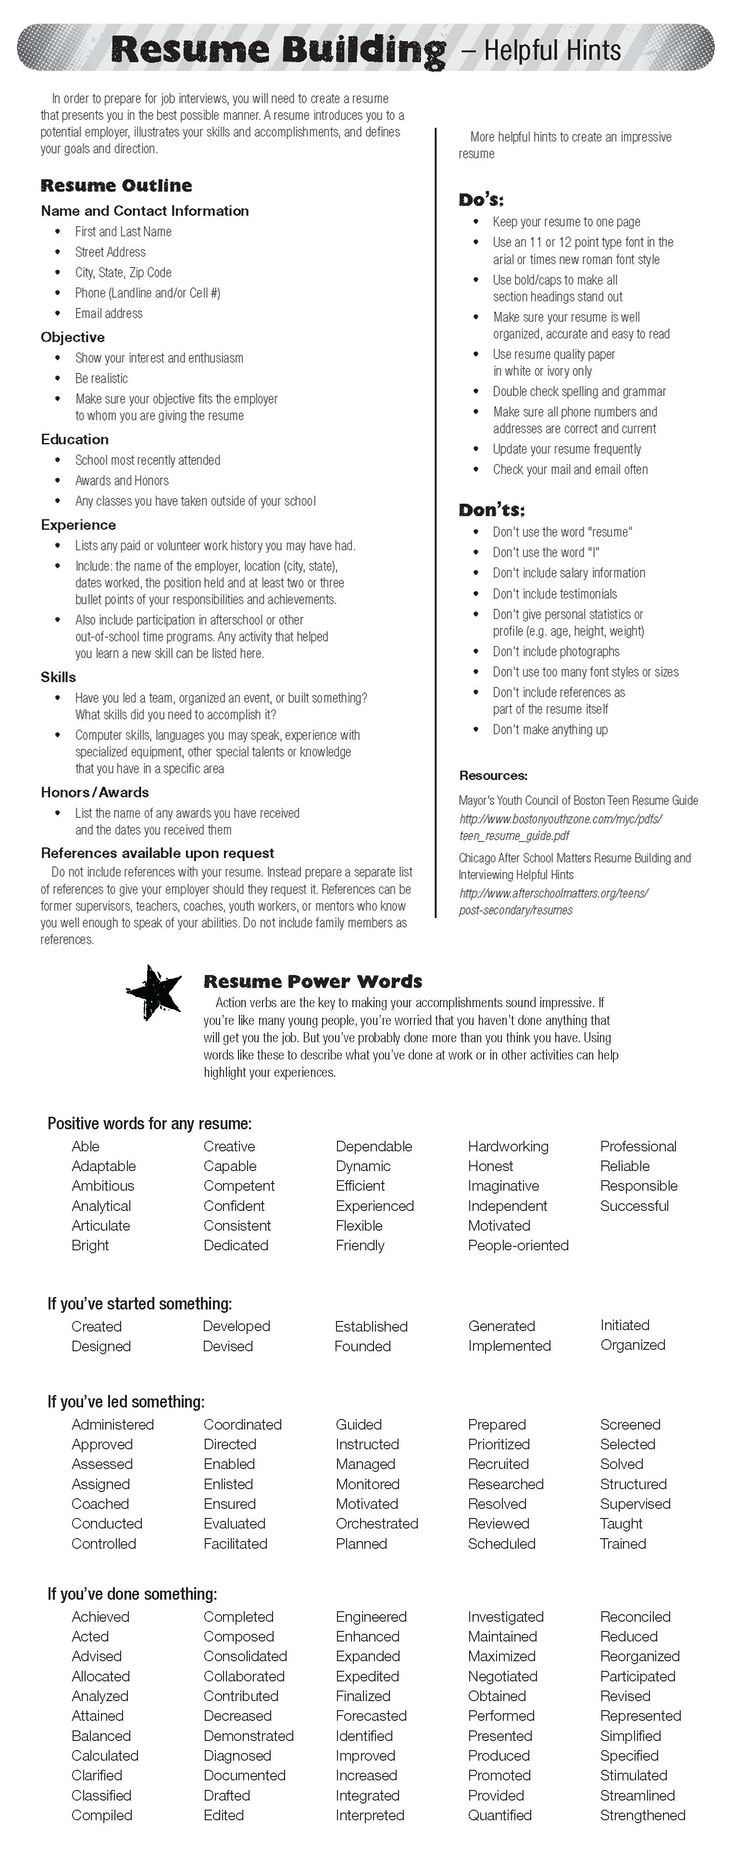 Opposenewapstandardsus  Surprising  Ideas About Resume On Pinterest  Cv Format Resume Cv And  With Likable  Ideas About Resume On Pinterest  Cv Format Resume Cv And Resume Templates With Cute Restaurant Manager Sample Resume Also Good Qualities To Put On Resume In Addition References Template For Resume And Examples Of Resumes For Customer Service As Well As Resume Examples Teacher Additionally How To Make A Cover Letter And Resume From Pinterestcom With Opposenewapstandardsus  Likable  Ideas About Resume On Pinterest  Cv Format Resume Cv And  With Cute  Ideas About Resume On Pinterest  Cv Format Resume Cv And Resume Templates And Surprising Restaurant Manager Sample Resume Also Good Qualities To Put On Resume In Addition References Template For Resume From Pinterestcom